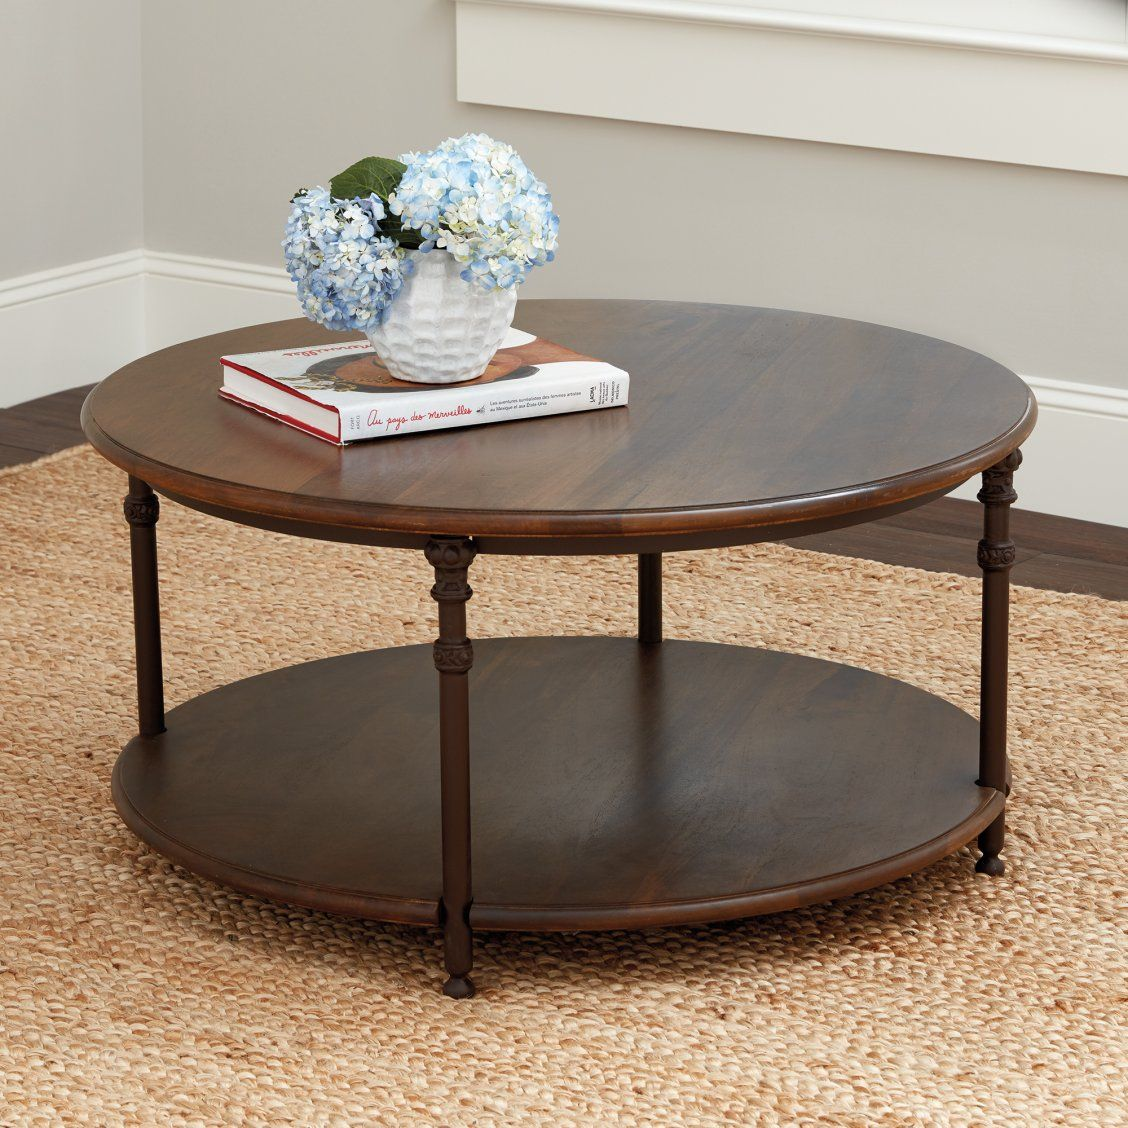 Toulouse Round Wooden Coffee Table Round Wooden Coffee Table Coffee Table Coffee Table Wood [ 1128 x 1128 Pixel ]